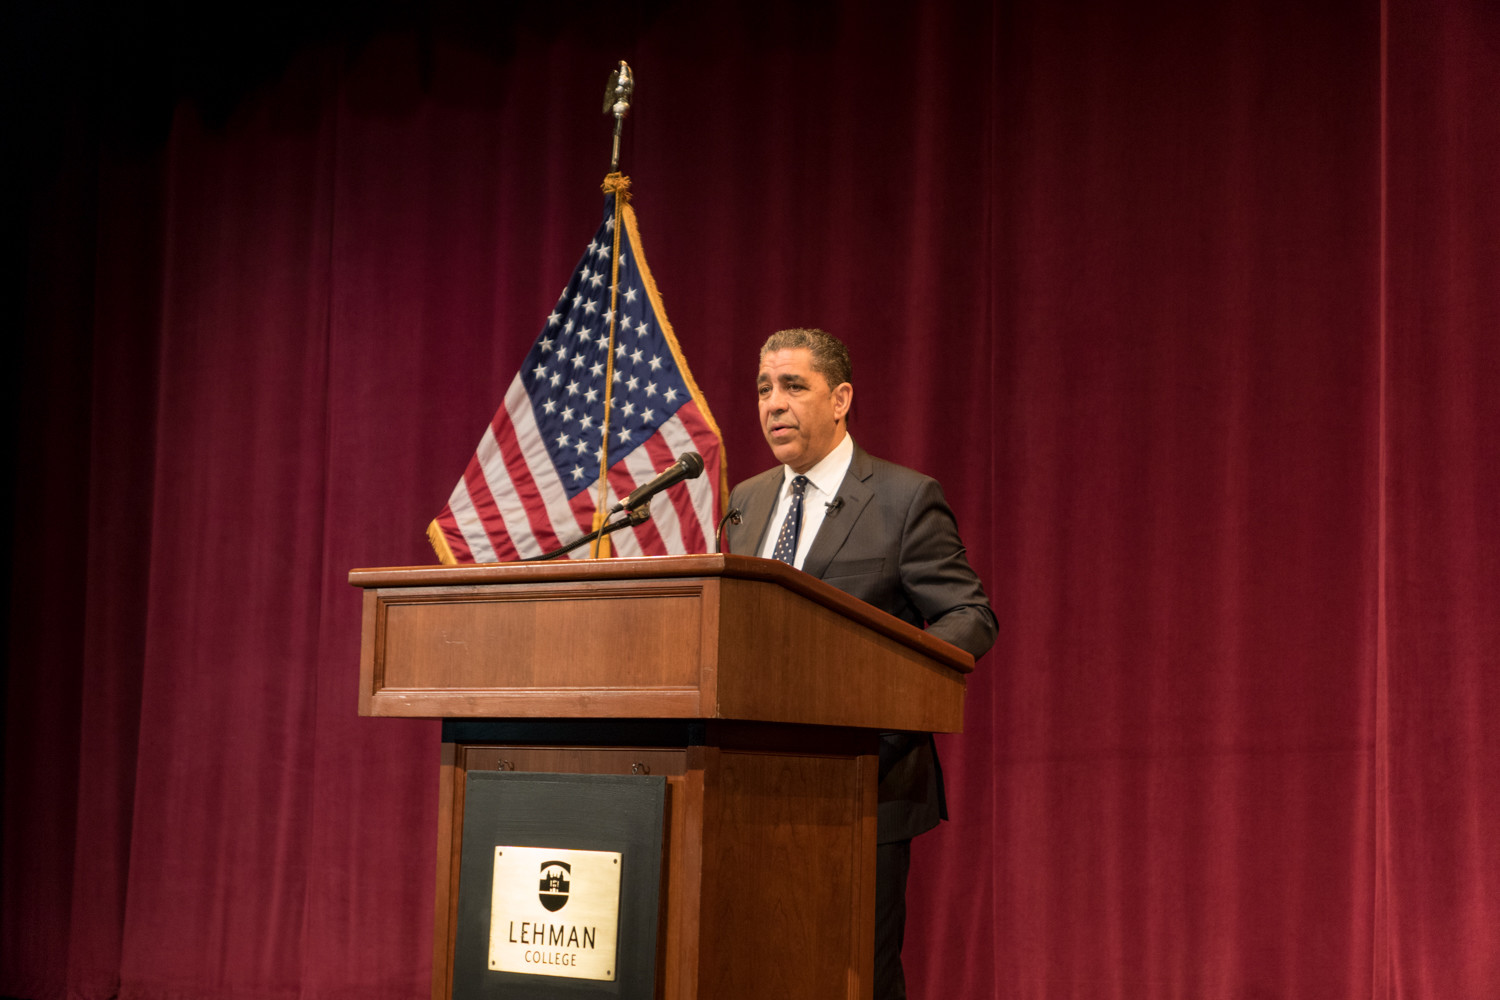 U.S. Rep. Adriano Espaillat talks about the need for organizing during the current Trump administration at Lehman College last year. Espaillat is a main attraction at a free meet-and-greet breakfast hosted by the Van Cortlandt Jewish Center on Jan. 28, with other elected officials expected to attend.